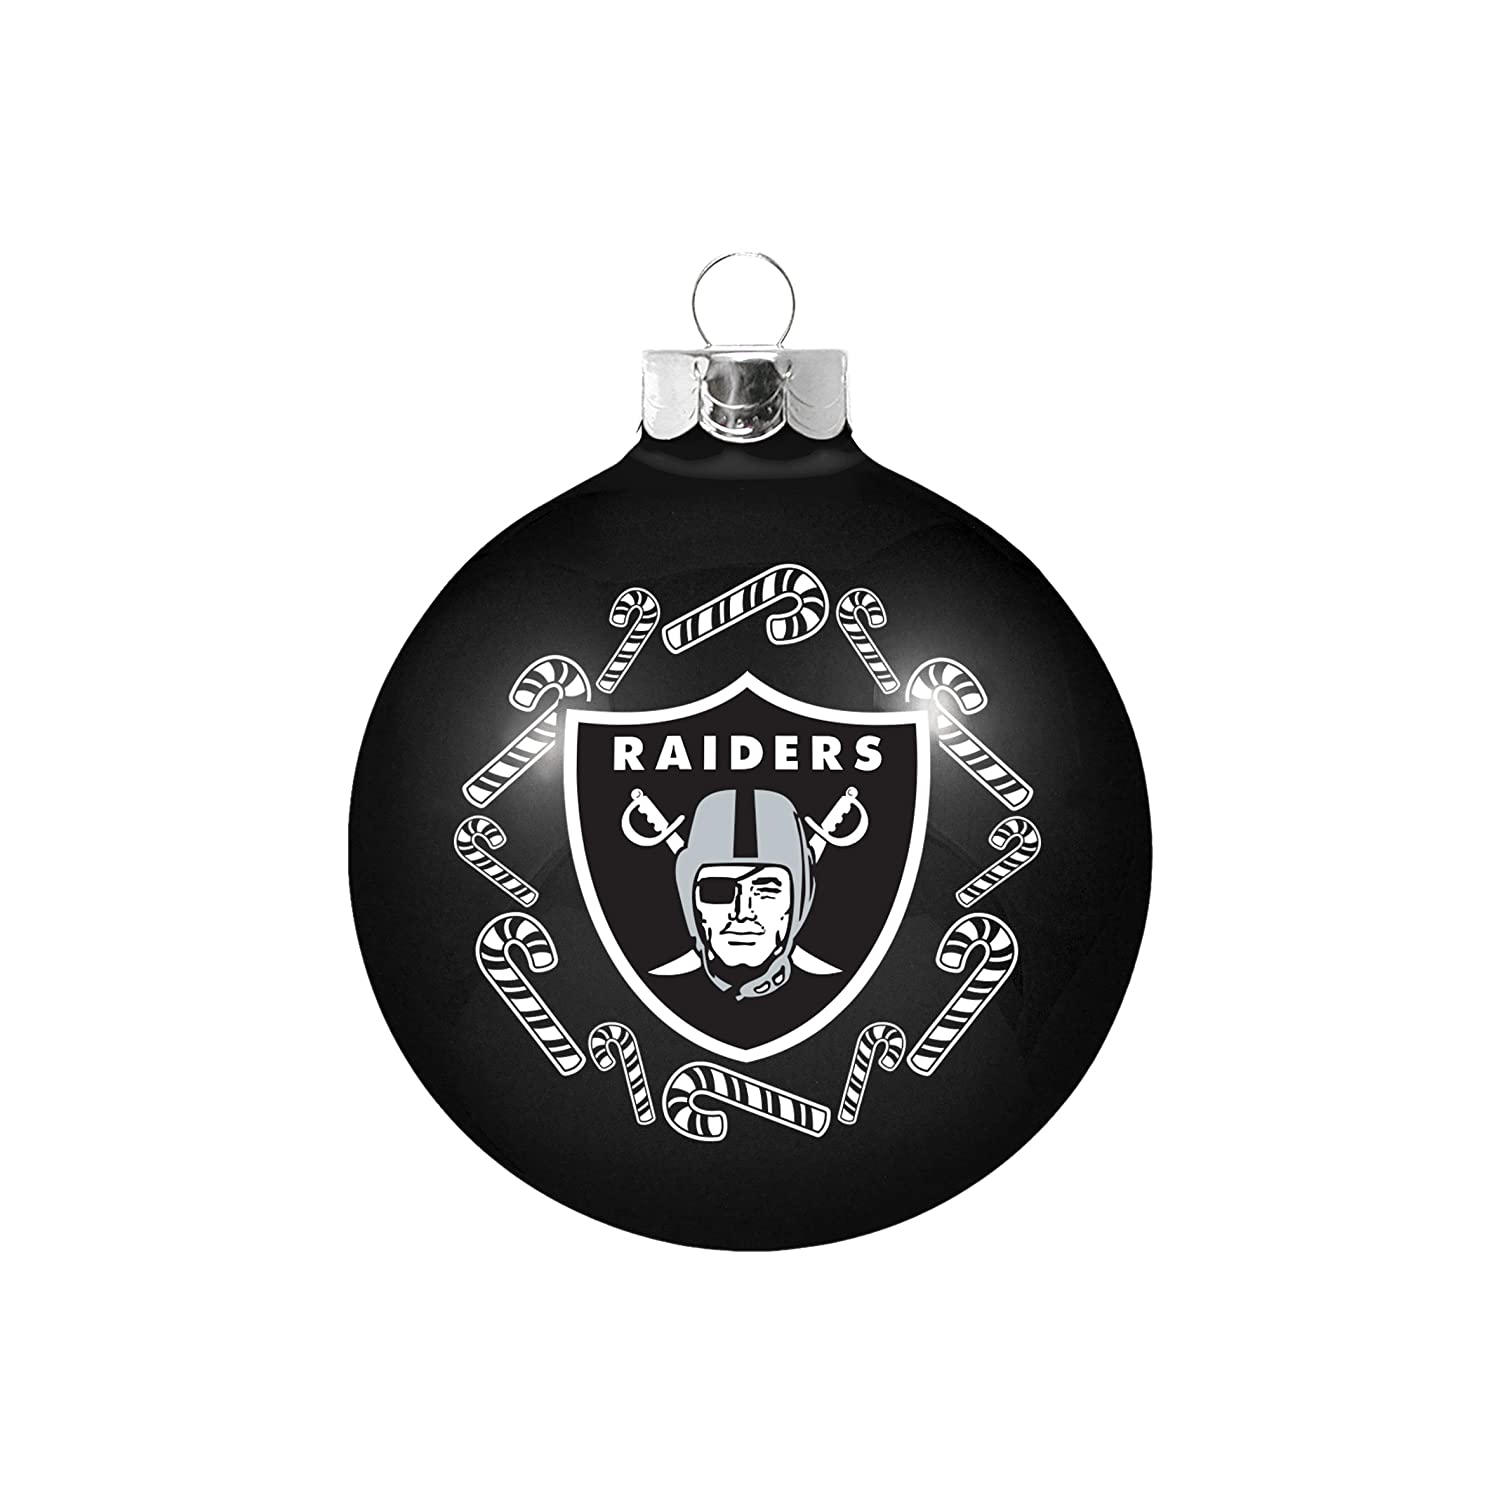 Amazon.com : NFL Oakland Raiders Small Ball Ornament : Sports & Outdoors